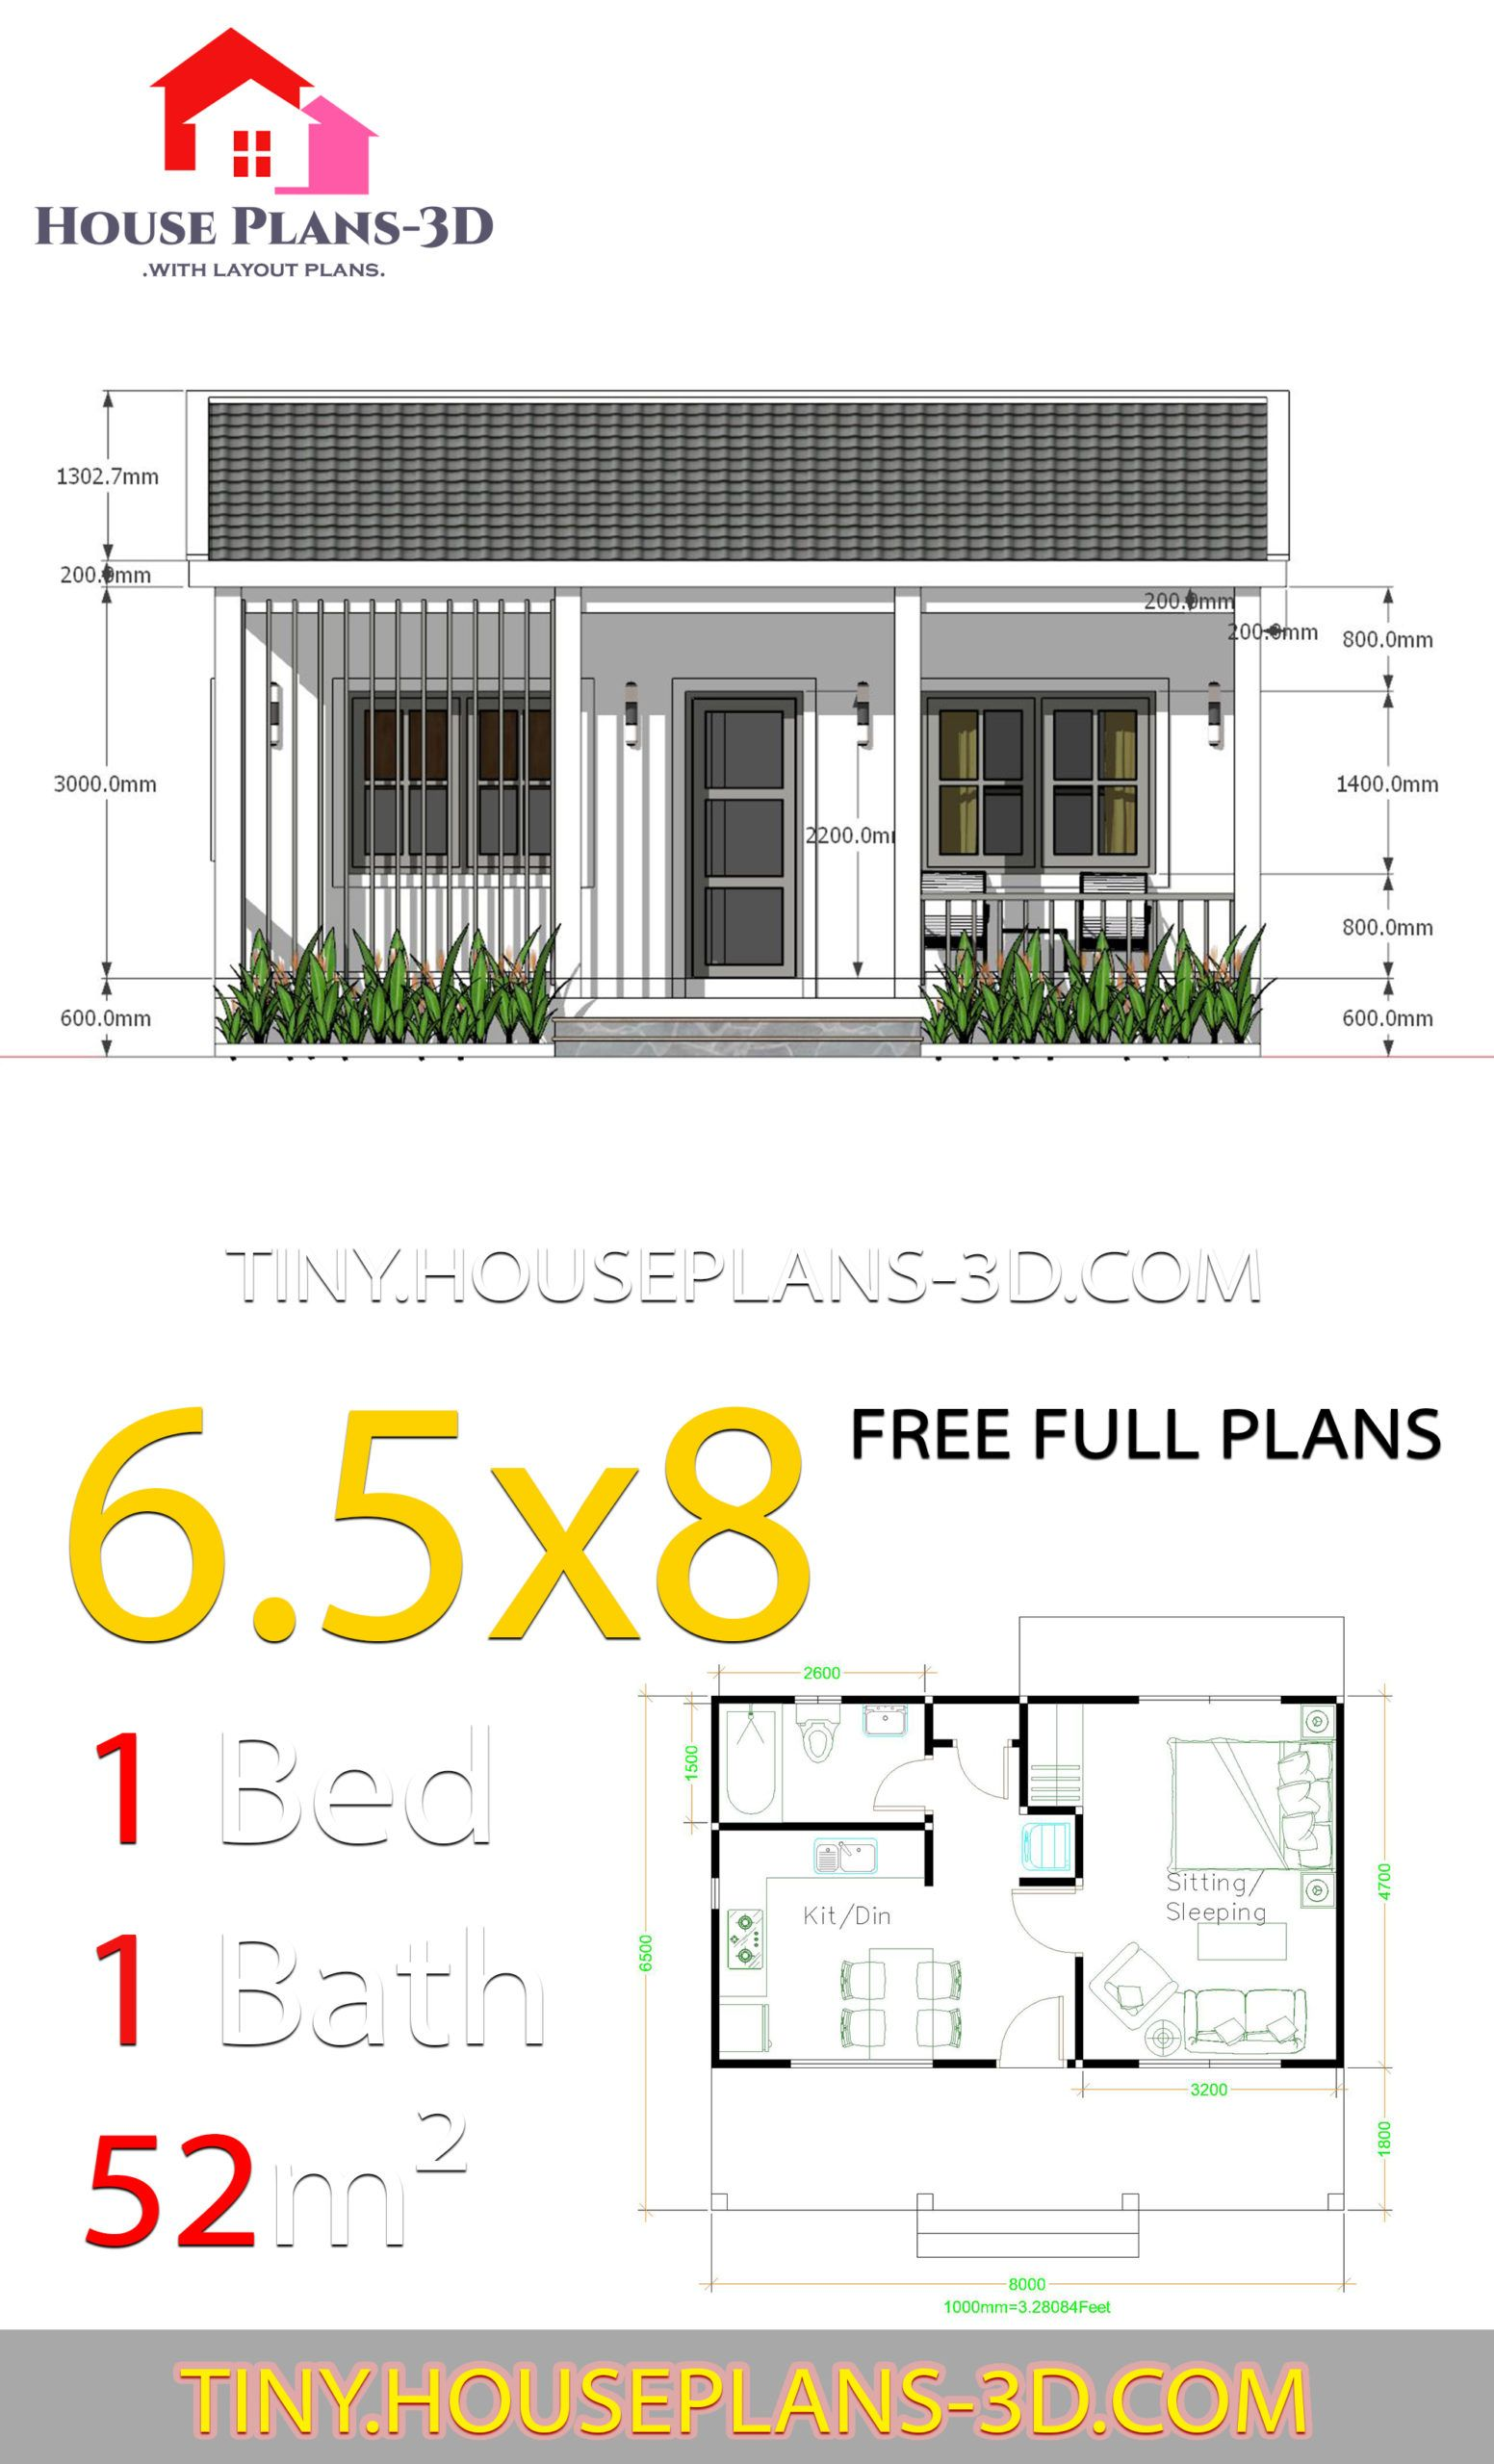 Small House Plans 6 5x8 With One Bedrooms Gable Roof Tiny House Plans House Plans Small House Plans Tiny House Plans